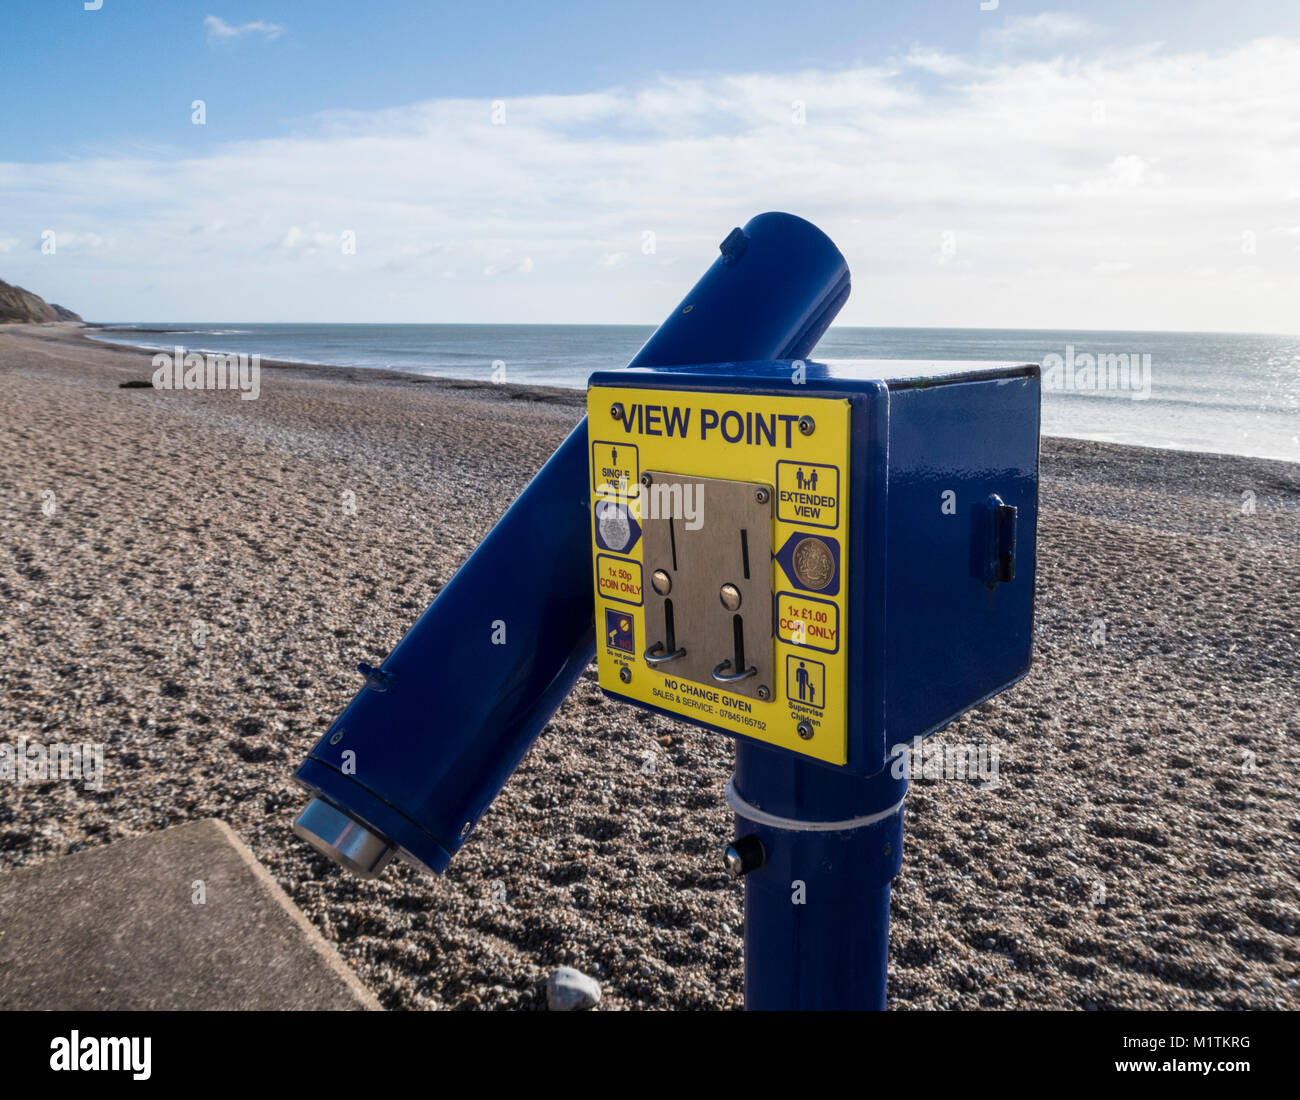 A Viewpoint telescope on the seafront at Seaton, Devon. - Stock Image